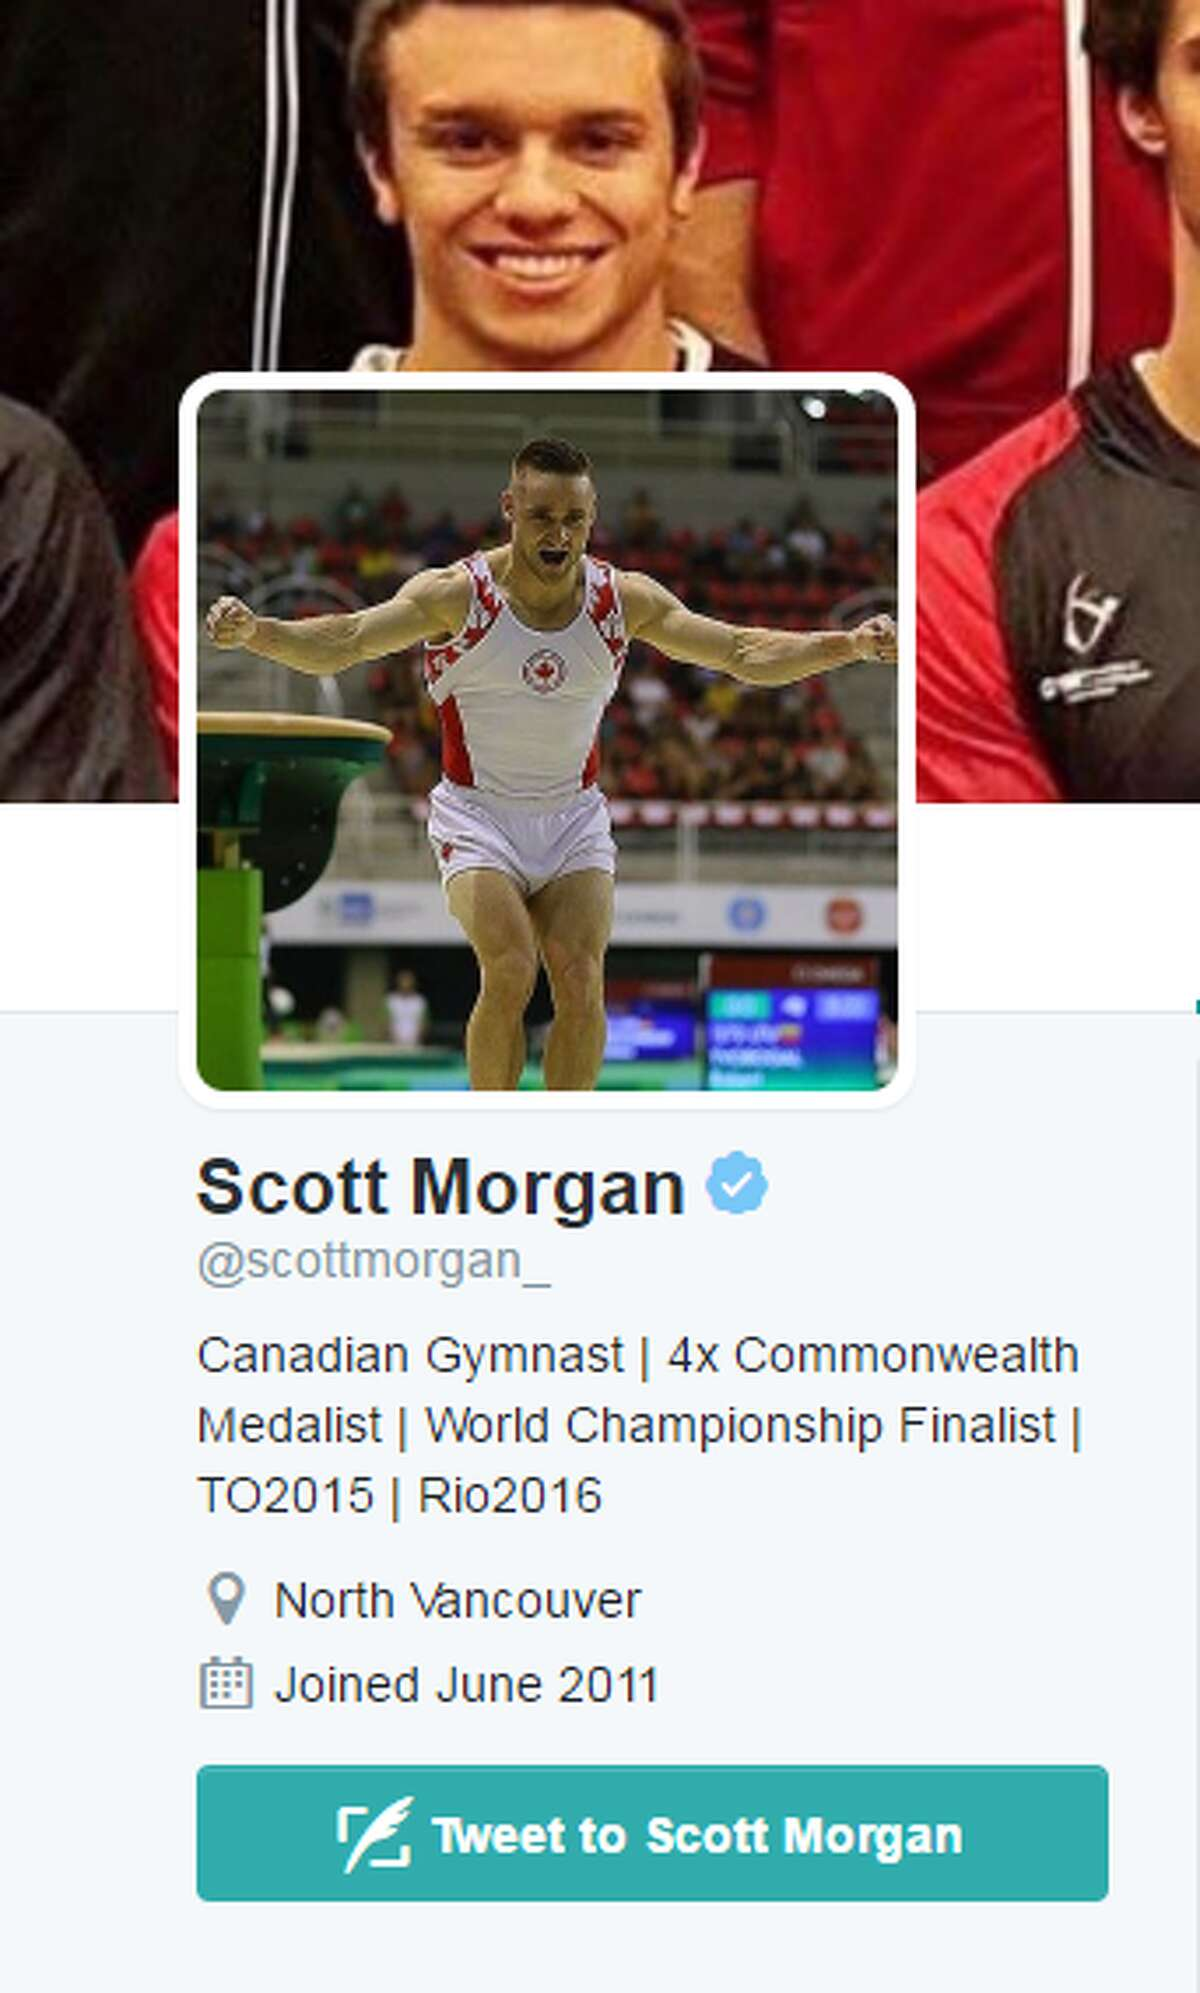 Scott Morgan, Canada Gymnastics Headed to his first Olympics, Morgan will be Canada's sole men's artistic gymnast in Rio. Morgan was Canada's second-most decorated athlete in the 2014 Commonwealth Games where he won four medals including two gold medals.